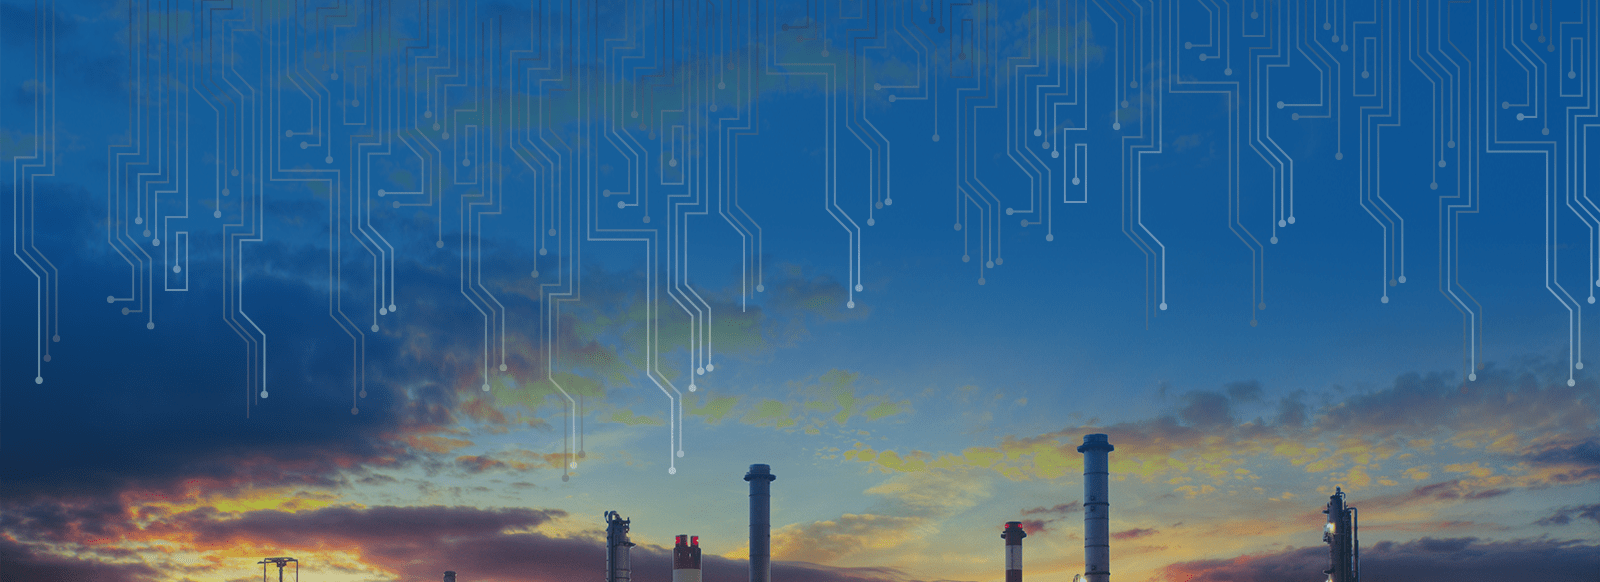 condition monitoring solutions for oil and gas refineries